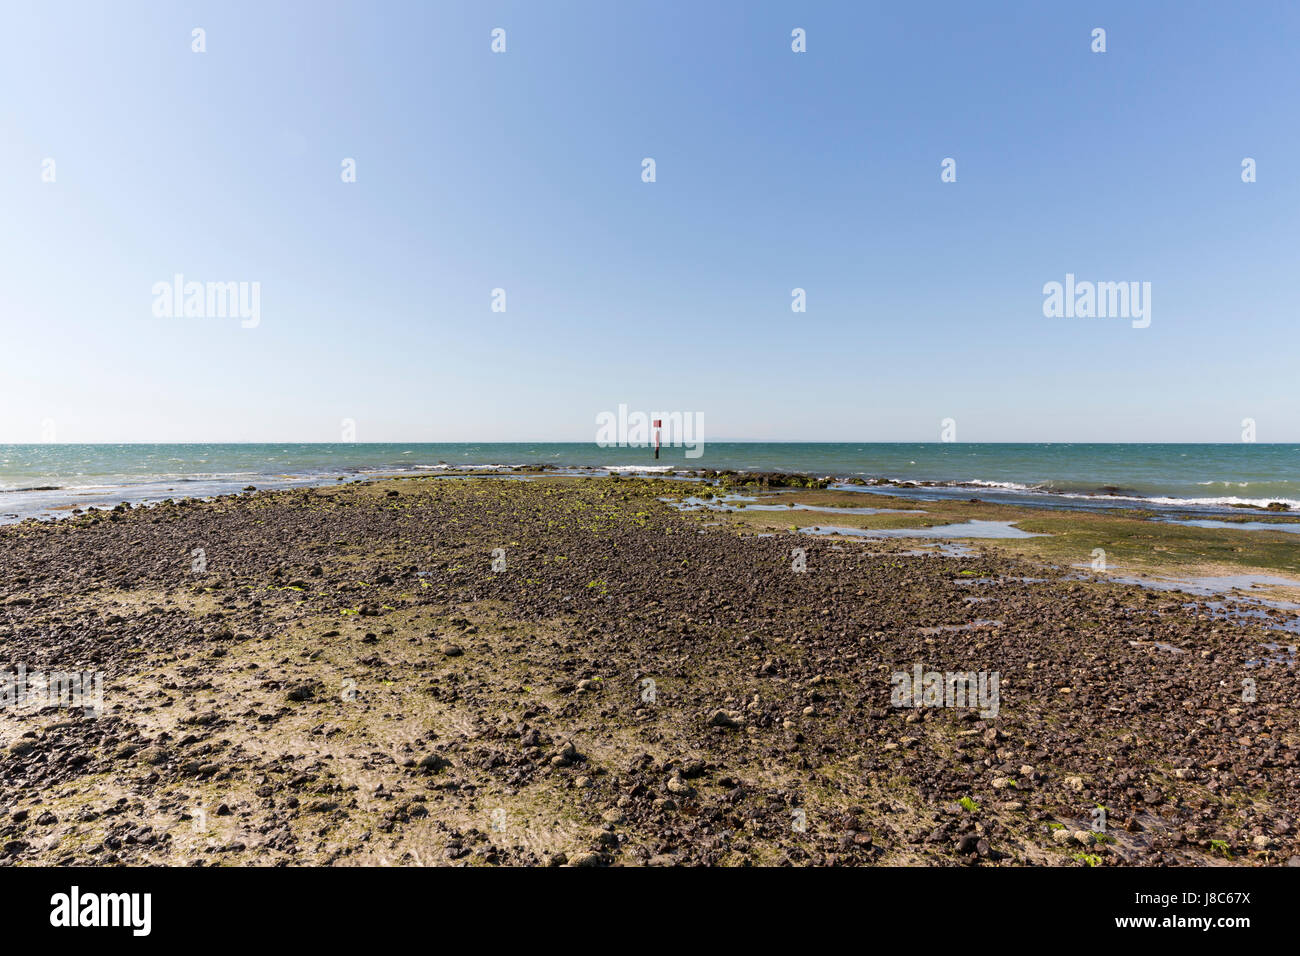 Plage avec ILM. Photo Stock